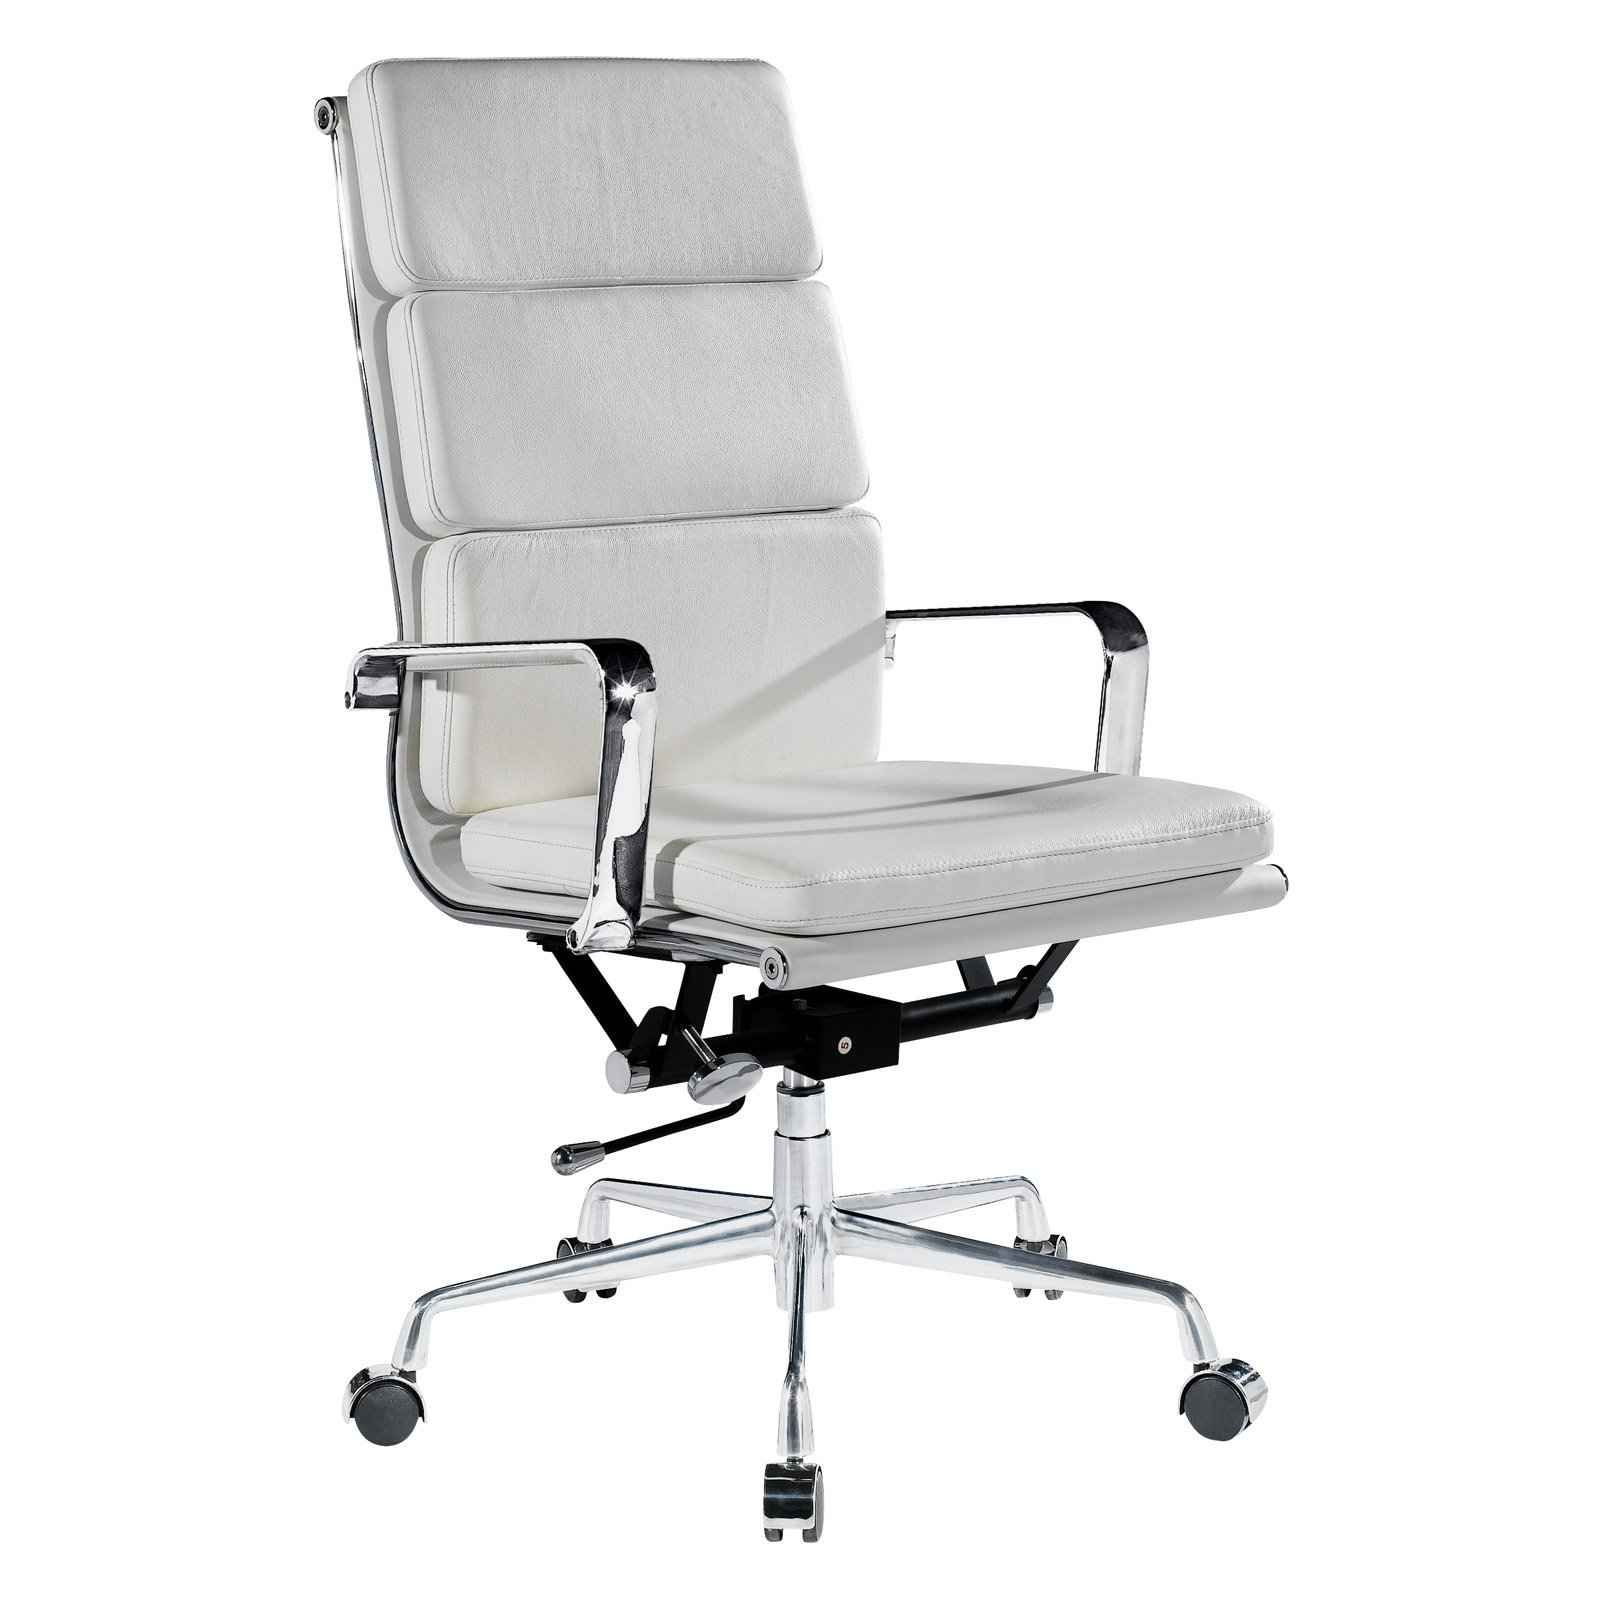 Designer office chairs sydney skrifbor sst lar for Chair design leather